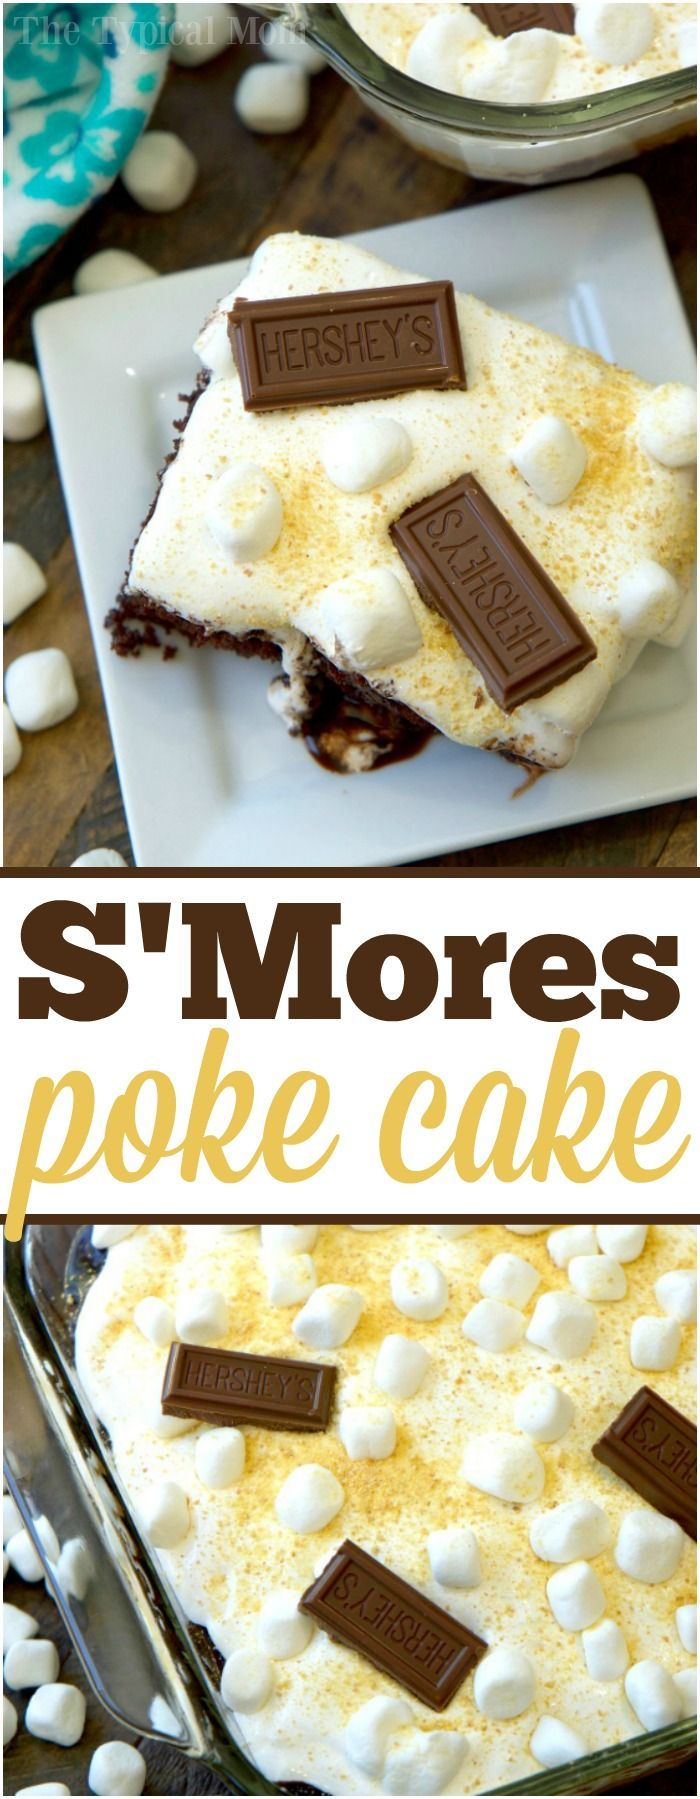 Baking Hershey's Milk Chocolate Smores poke cake with kids is not only delicious, but fun too! Covered in goodness, it's our favorite treat. AD via @thetypicalmom